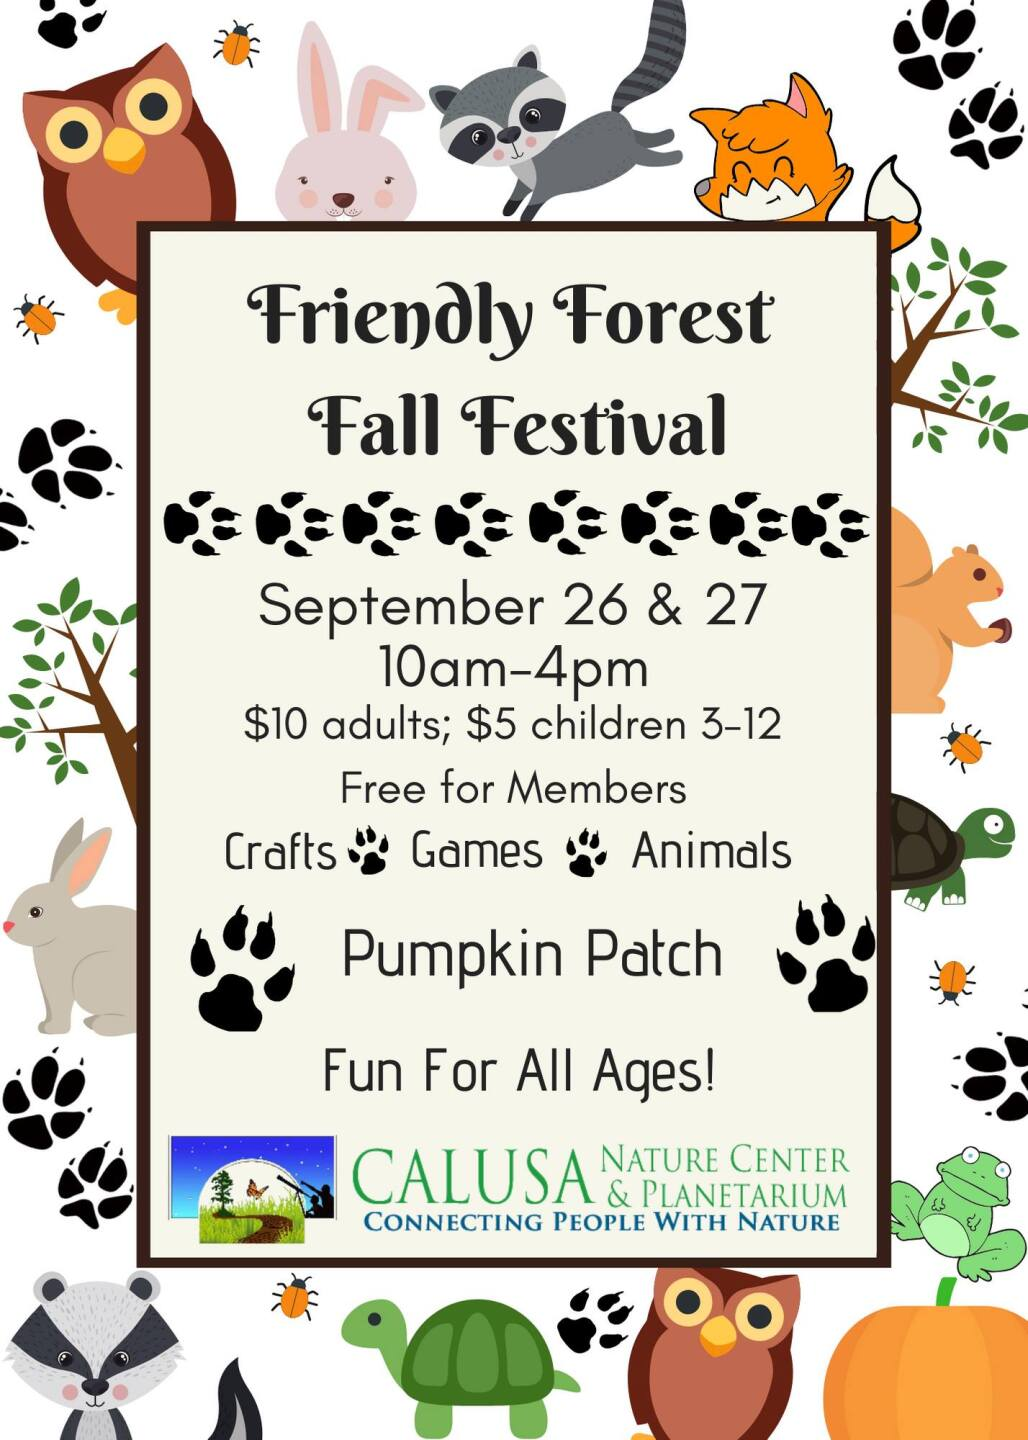 Friendly Forest Fall Festival.jpg